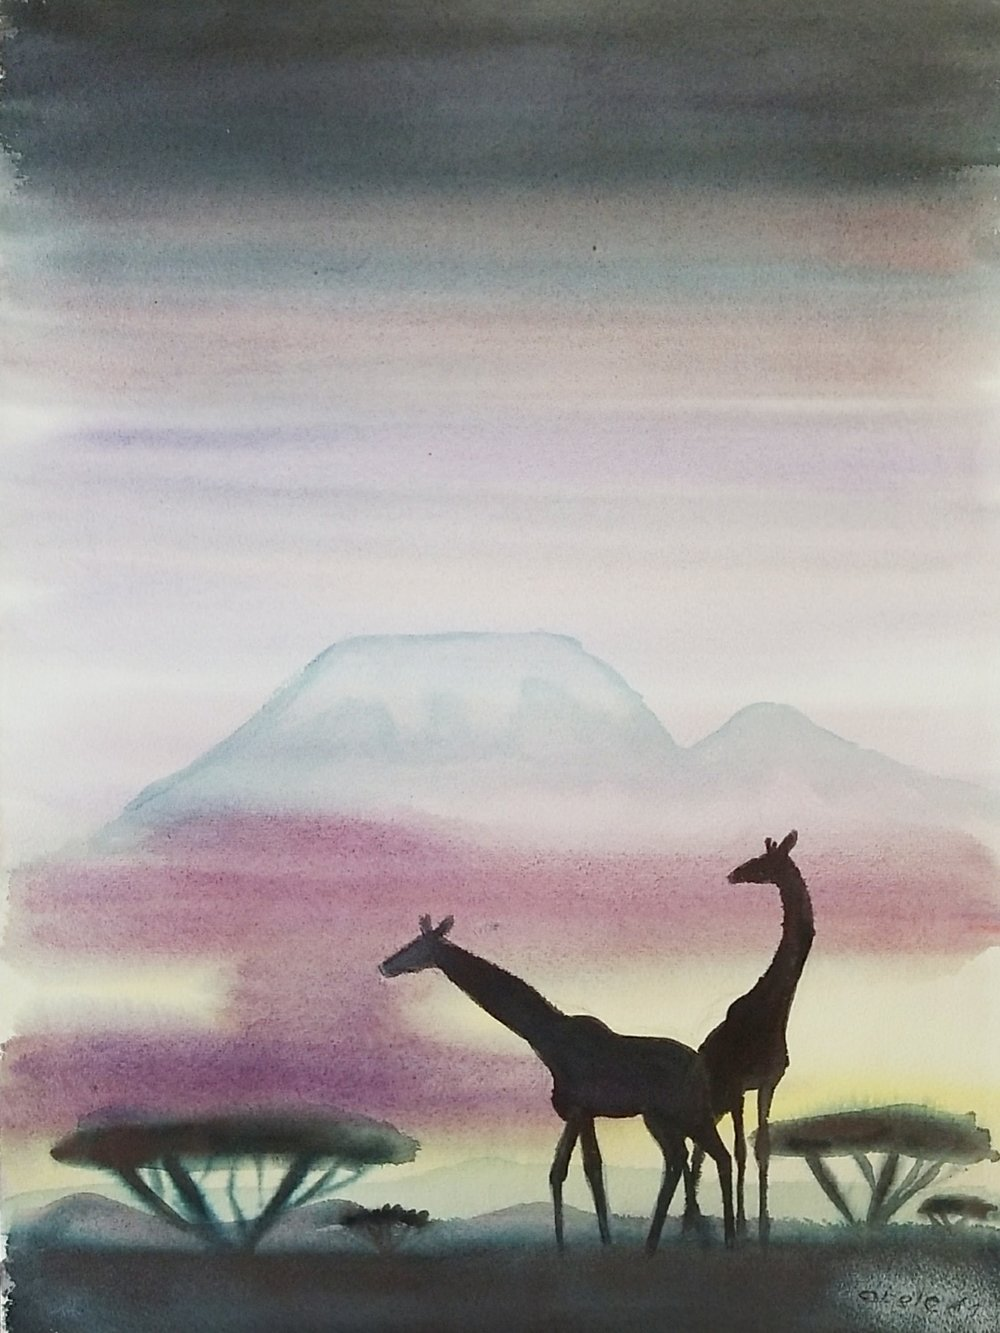 Giraffen in Schatten des Kibo Tansania / Giraffes in the Shadow of Kilimanjaro